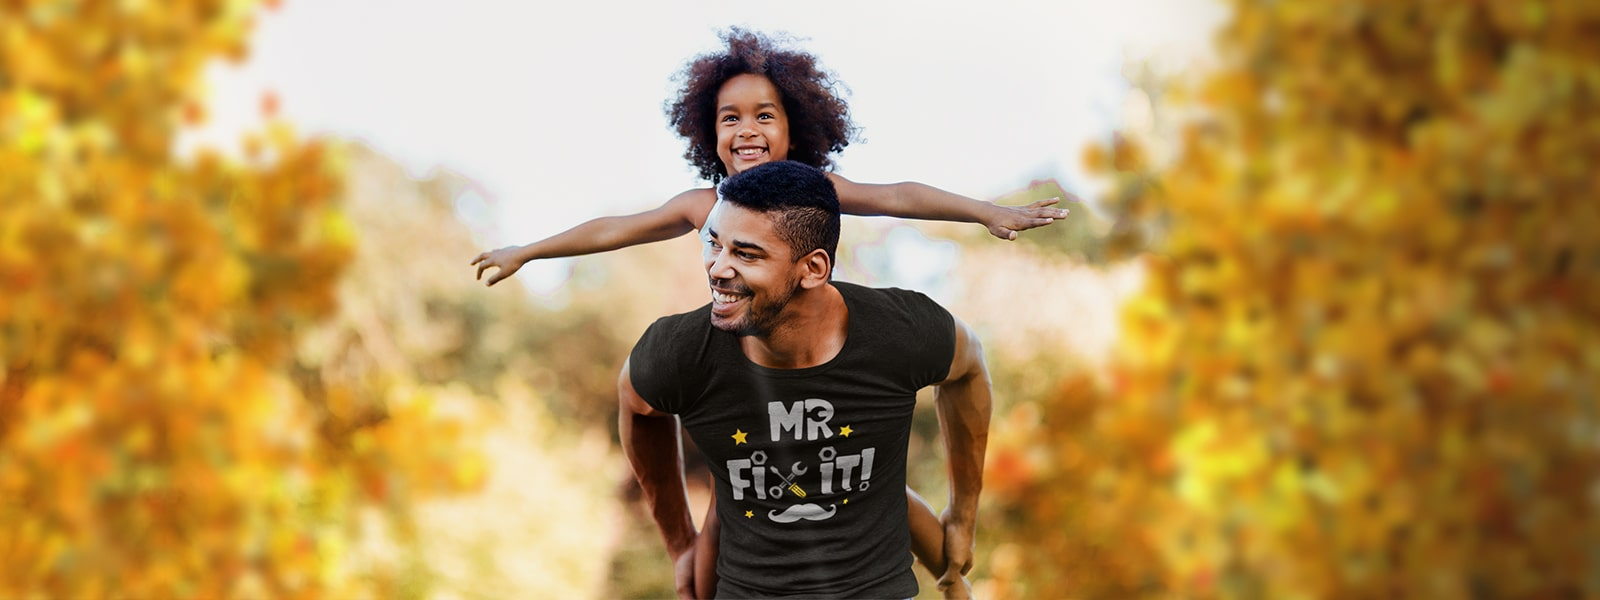 Our Top 9 Selection of Funny Gifts for Dad From Daughter